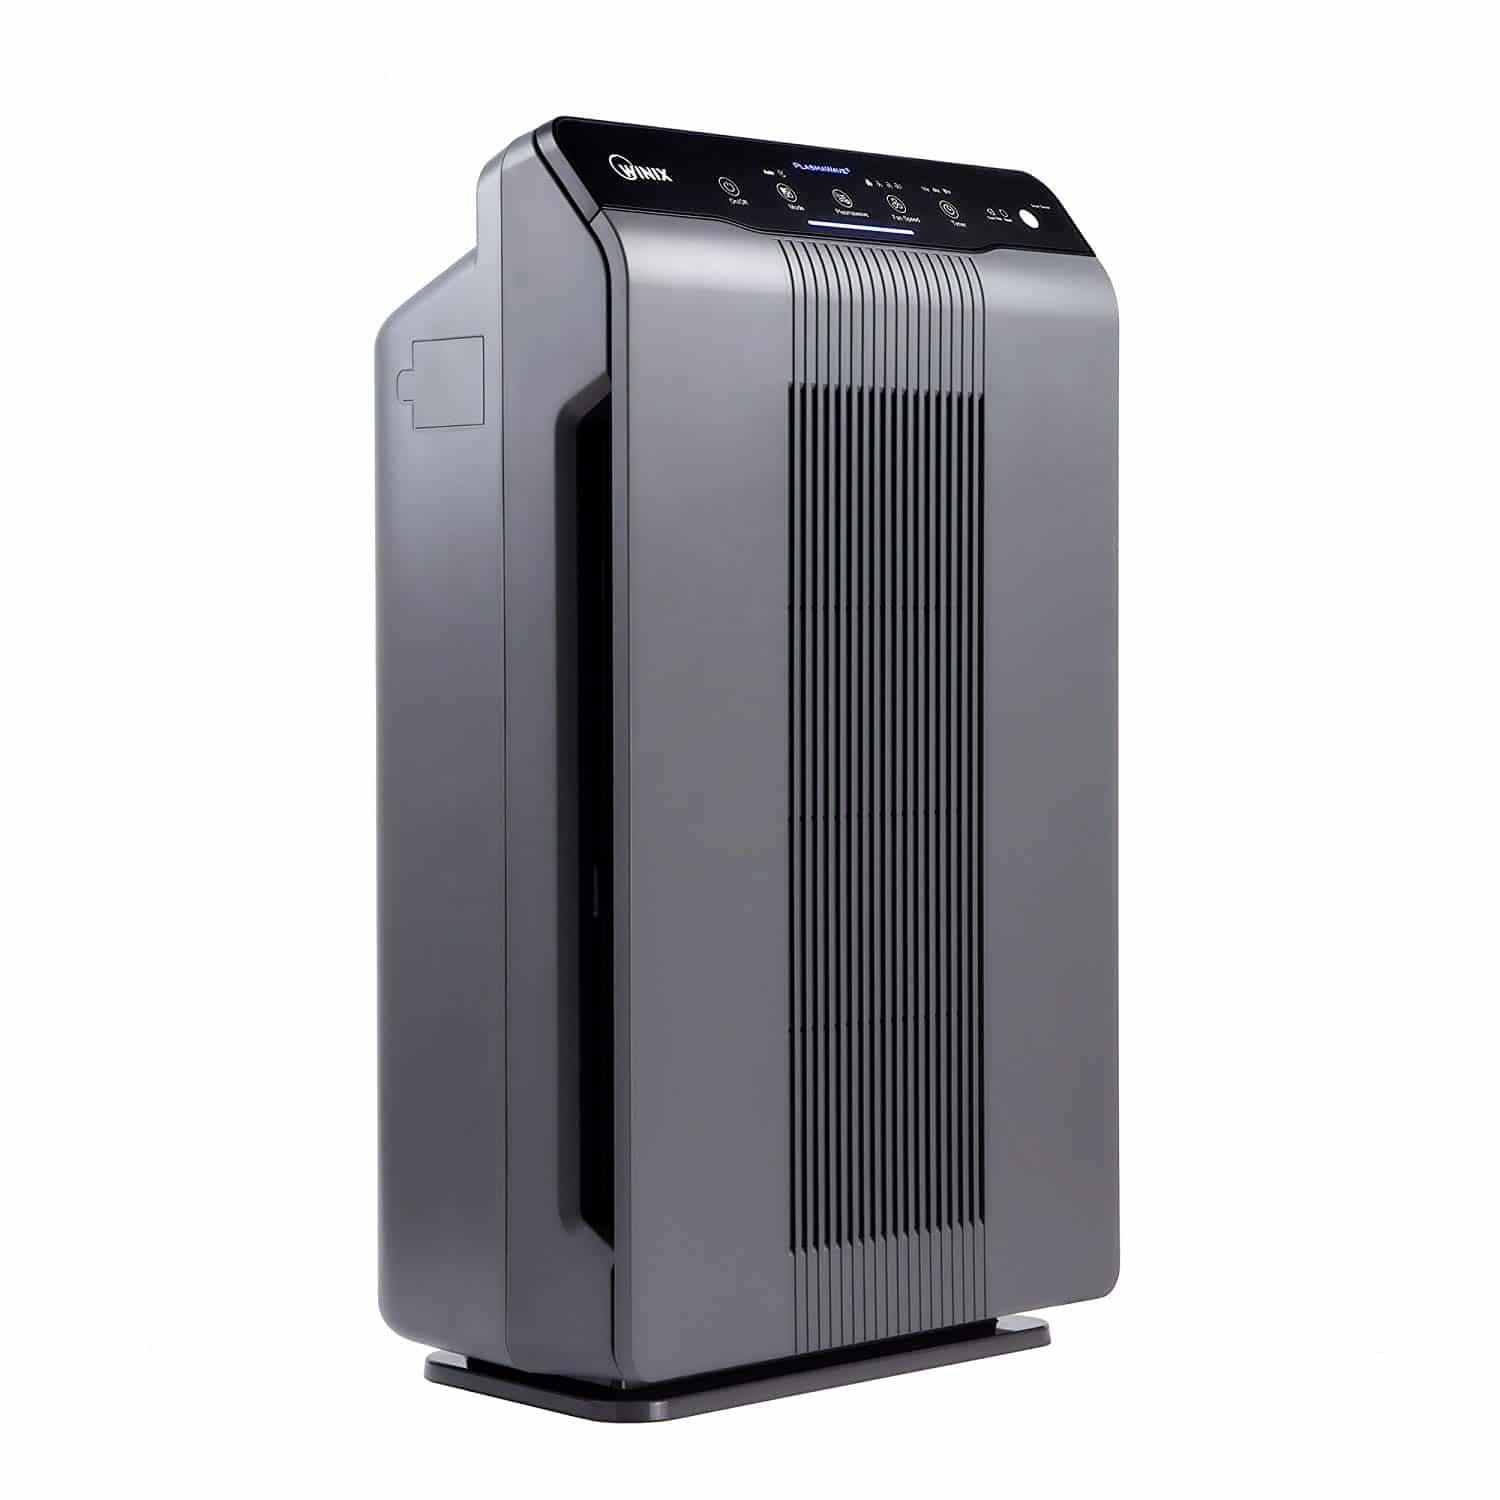 Winix Best Air Purifier topratedhomeproducts